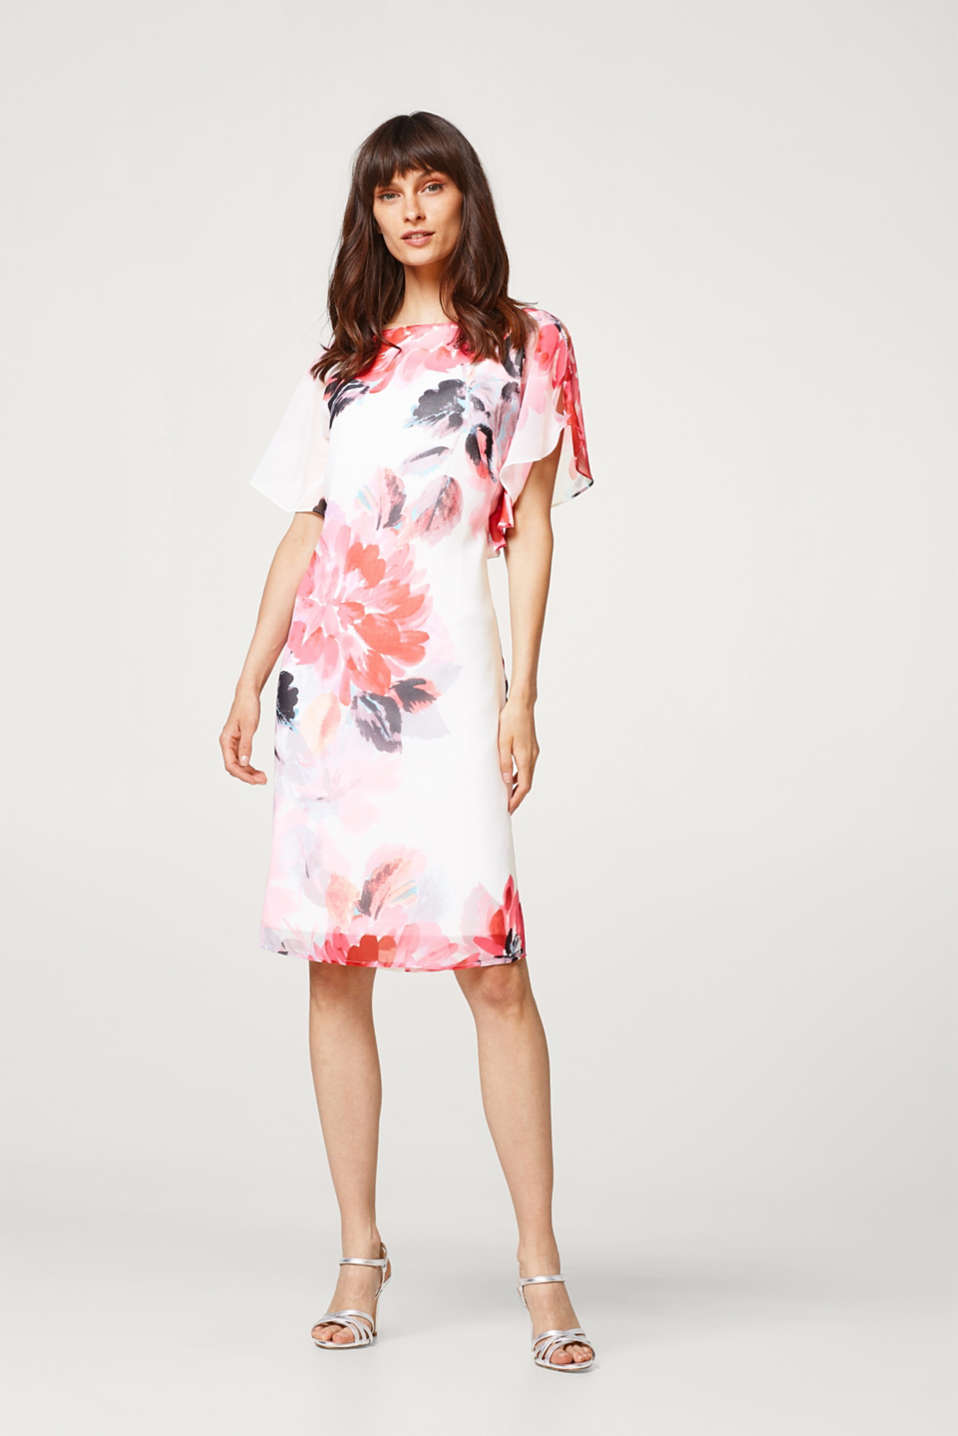 Esprit - Printed chiffon dress with frilled sleeves